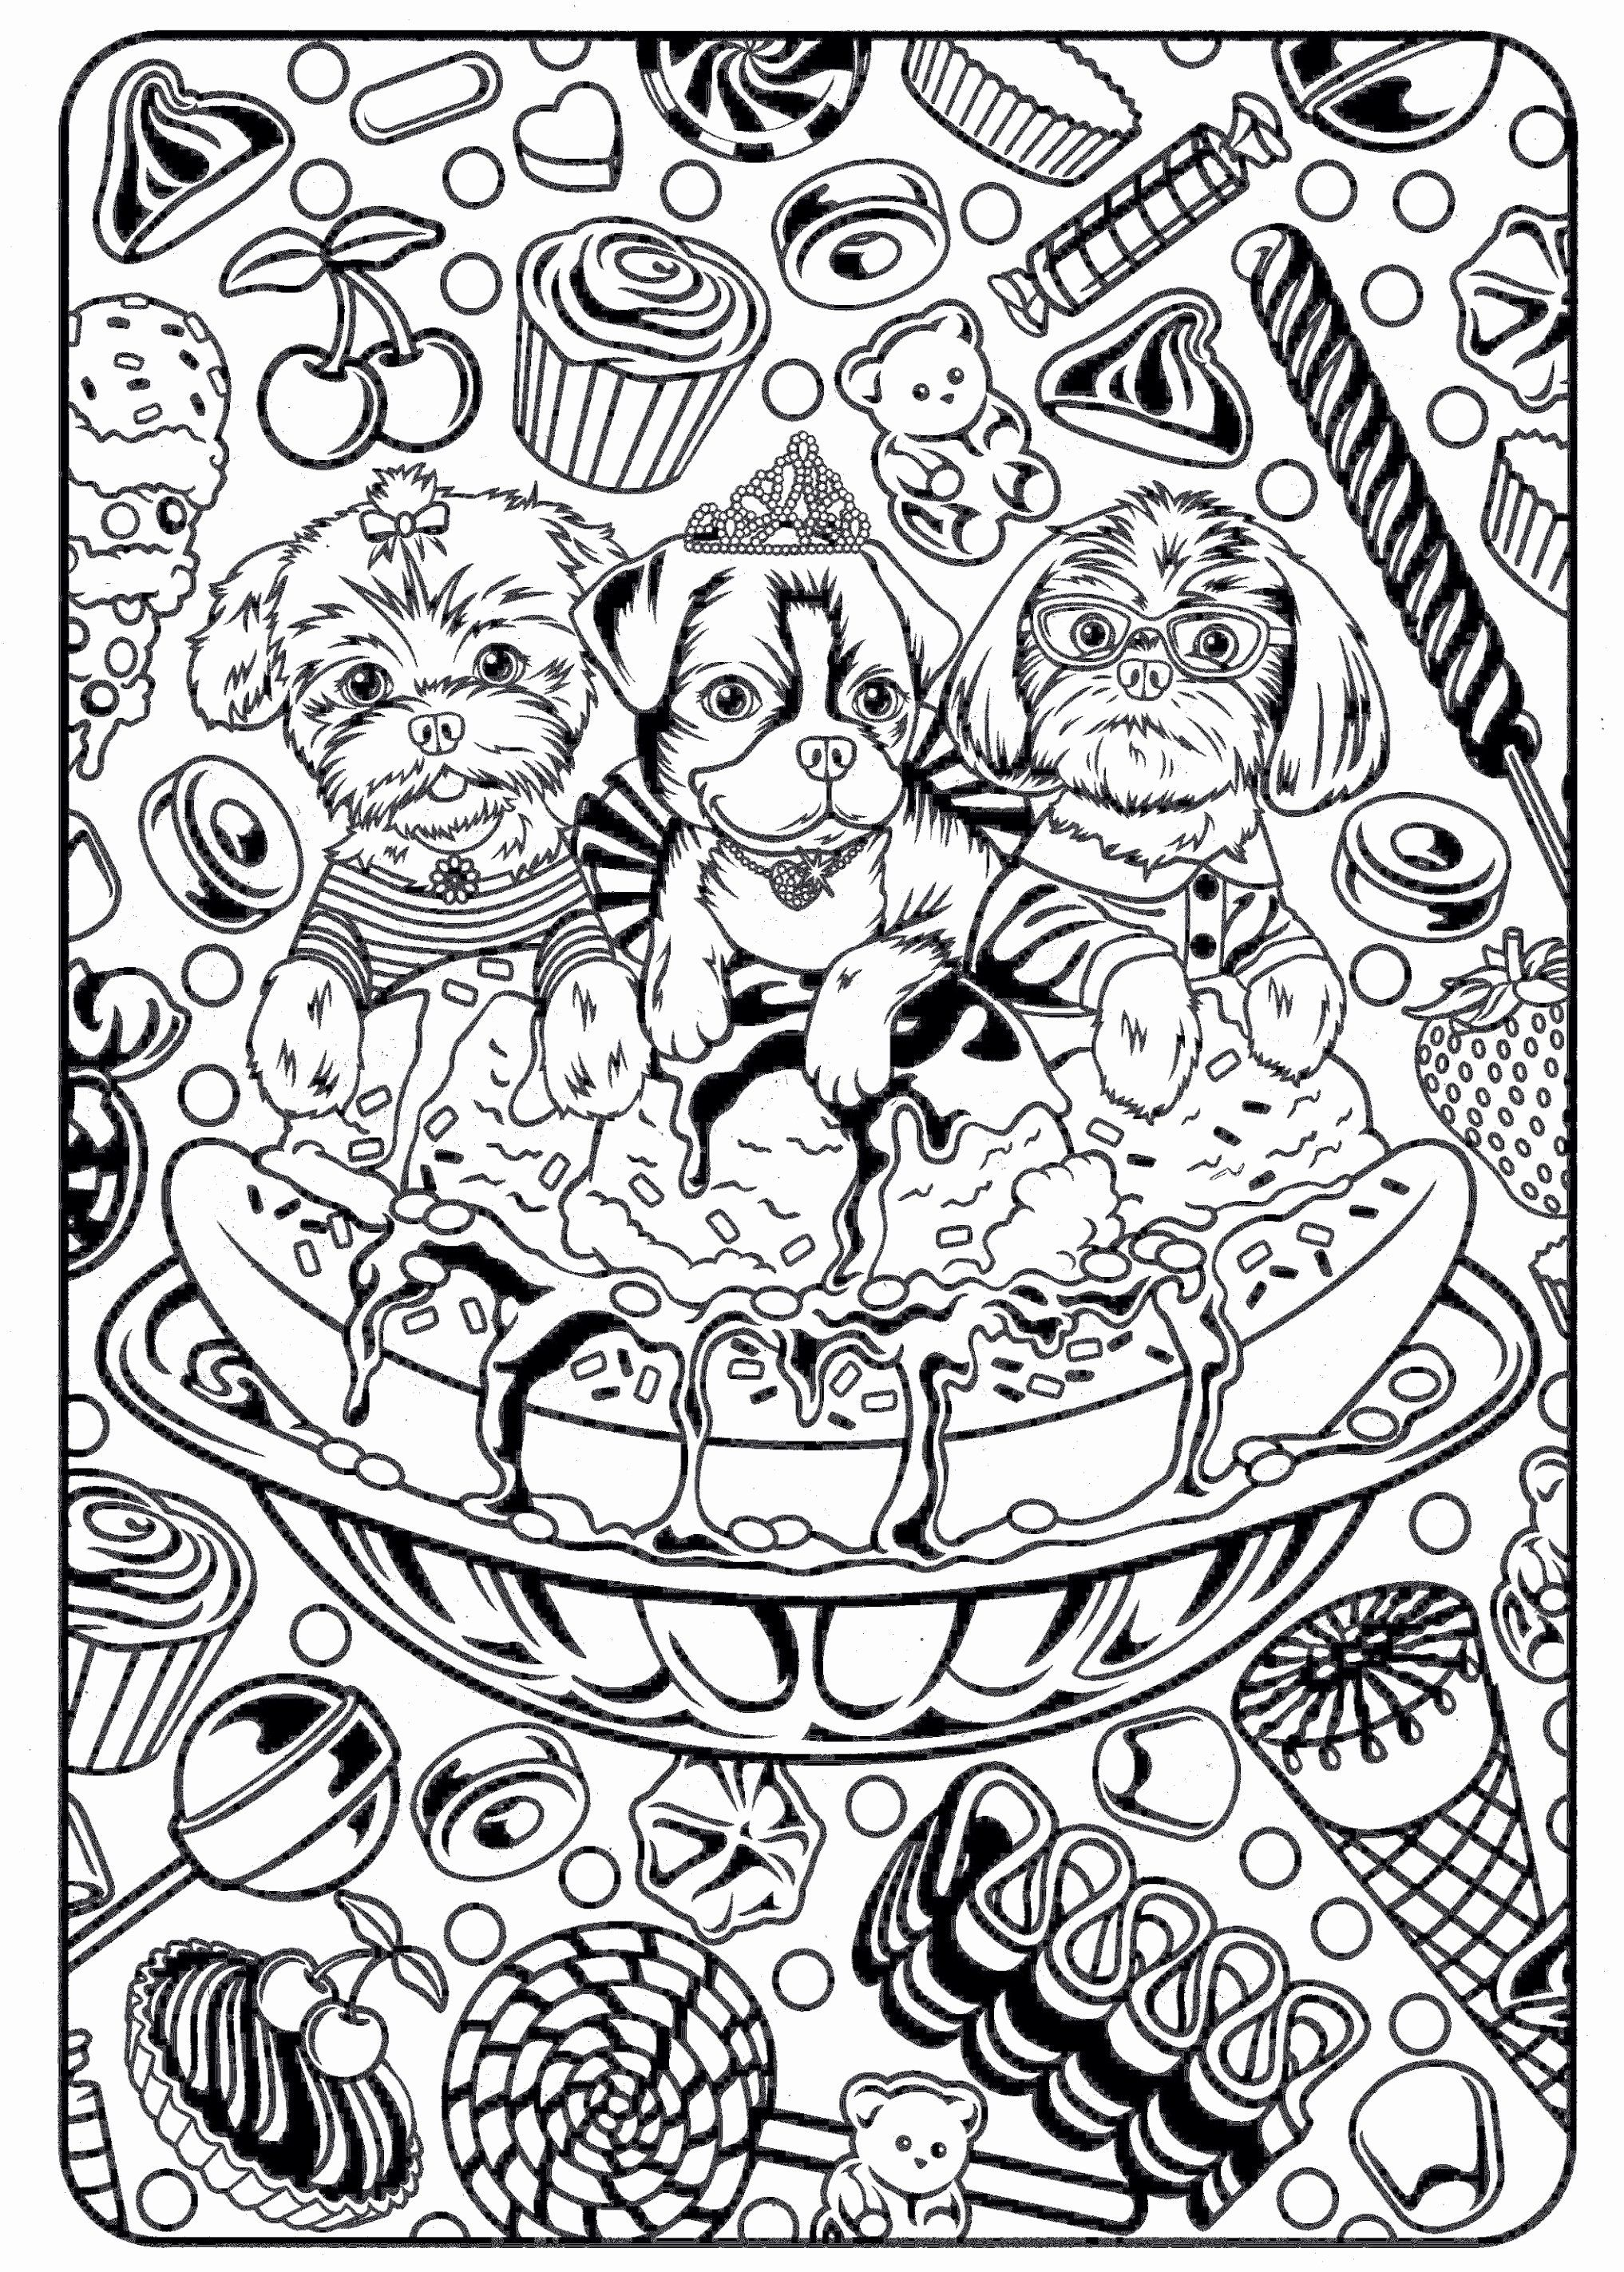 Coloring Sheets For Middle Schoolers Inspirational Summer